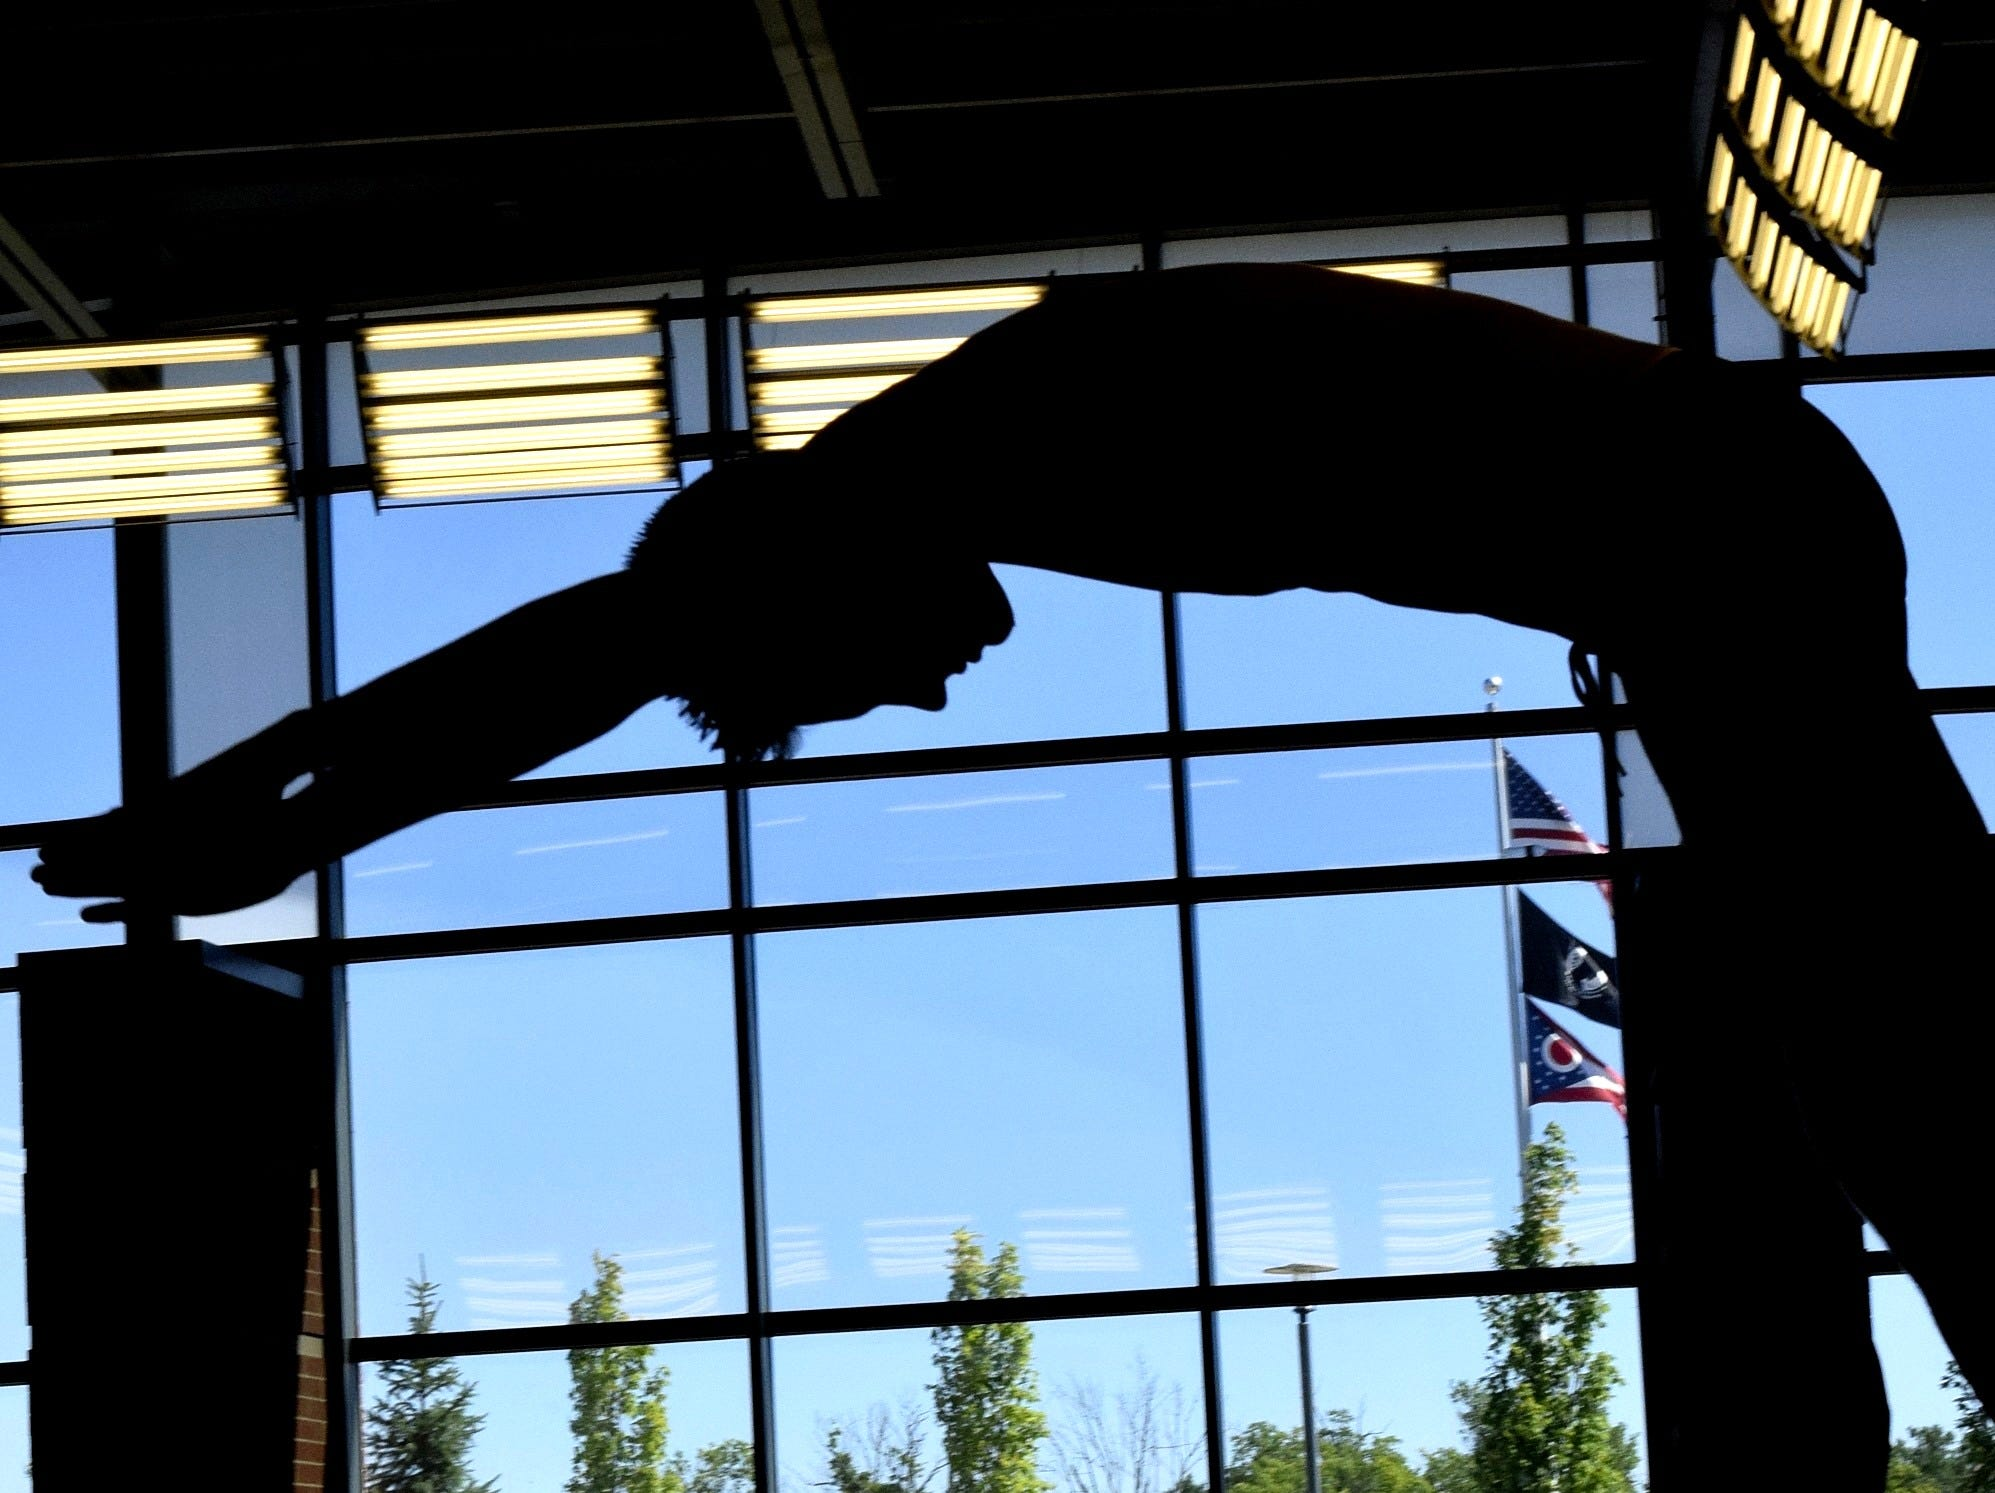 """The Cincinnati Moose 18U dive in the pool """"silhouette style"""" for action at the 8th Annual Jose Cerda Memorial Cincinnati Shootout Water Polo Tournament held at the Princeton High Natatorium, July 8, 2018."""